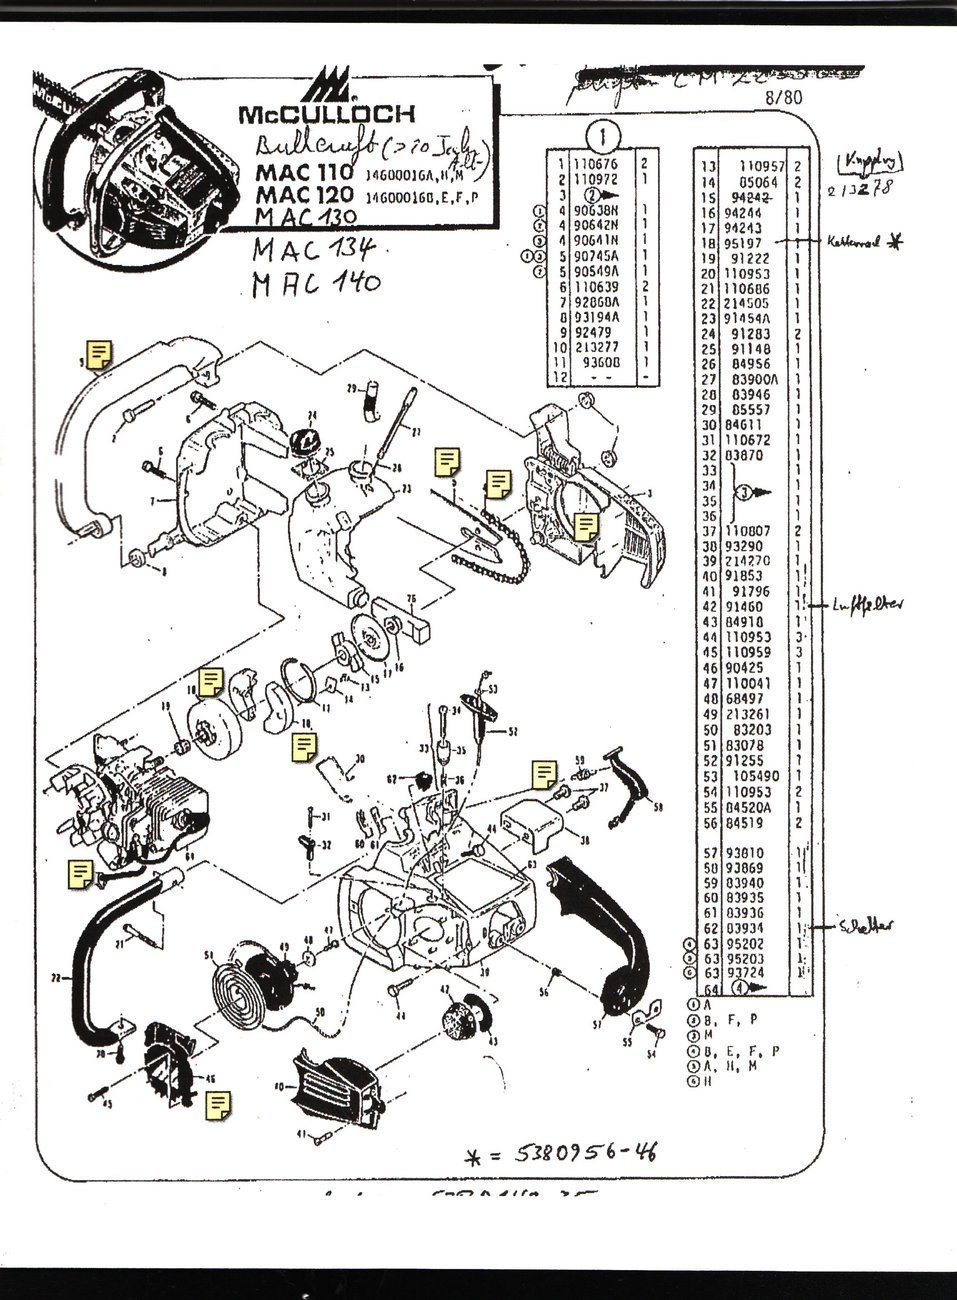 Inspiring Eager Beaver Chainsaw Parts Diagram Gallery - Best Image ...